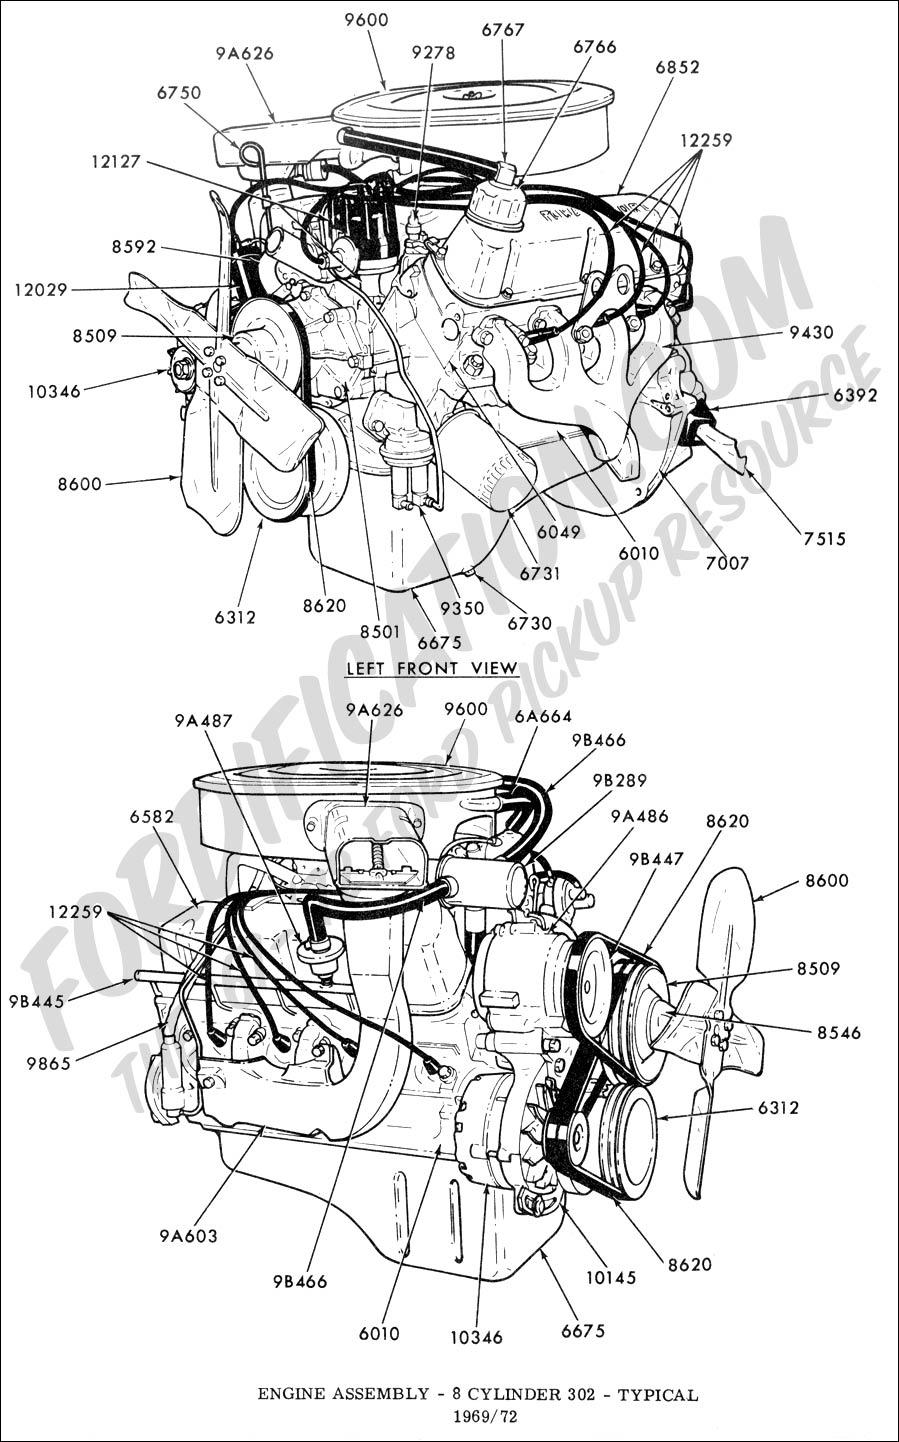 302 engine diagram